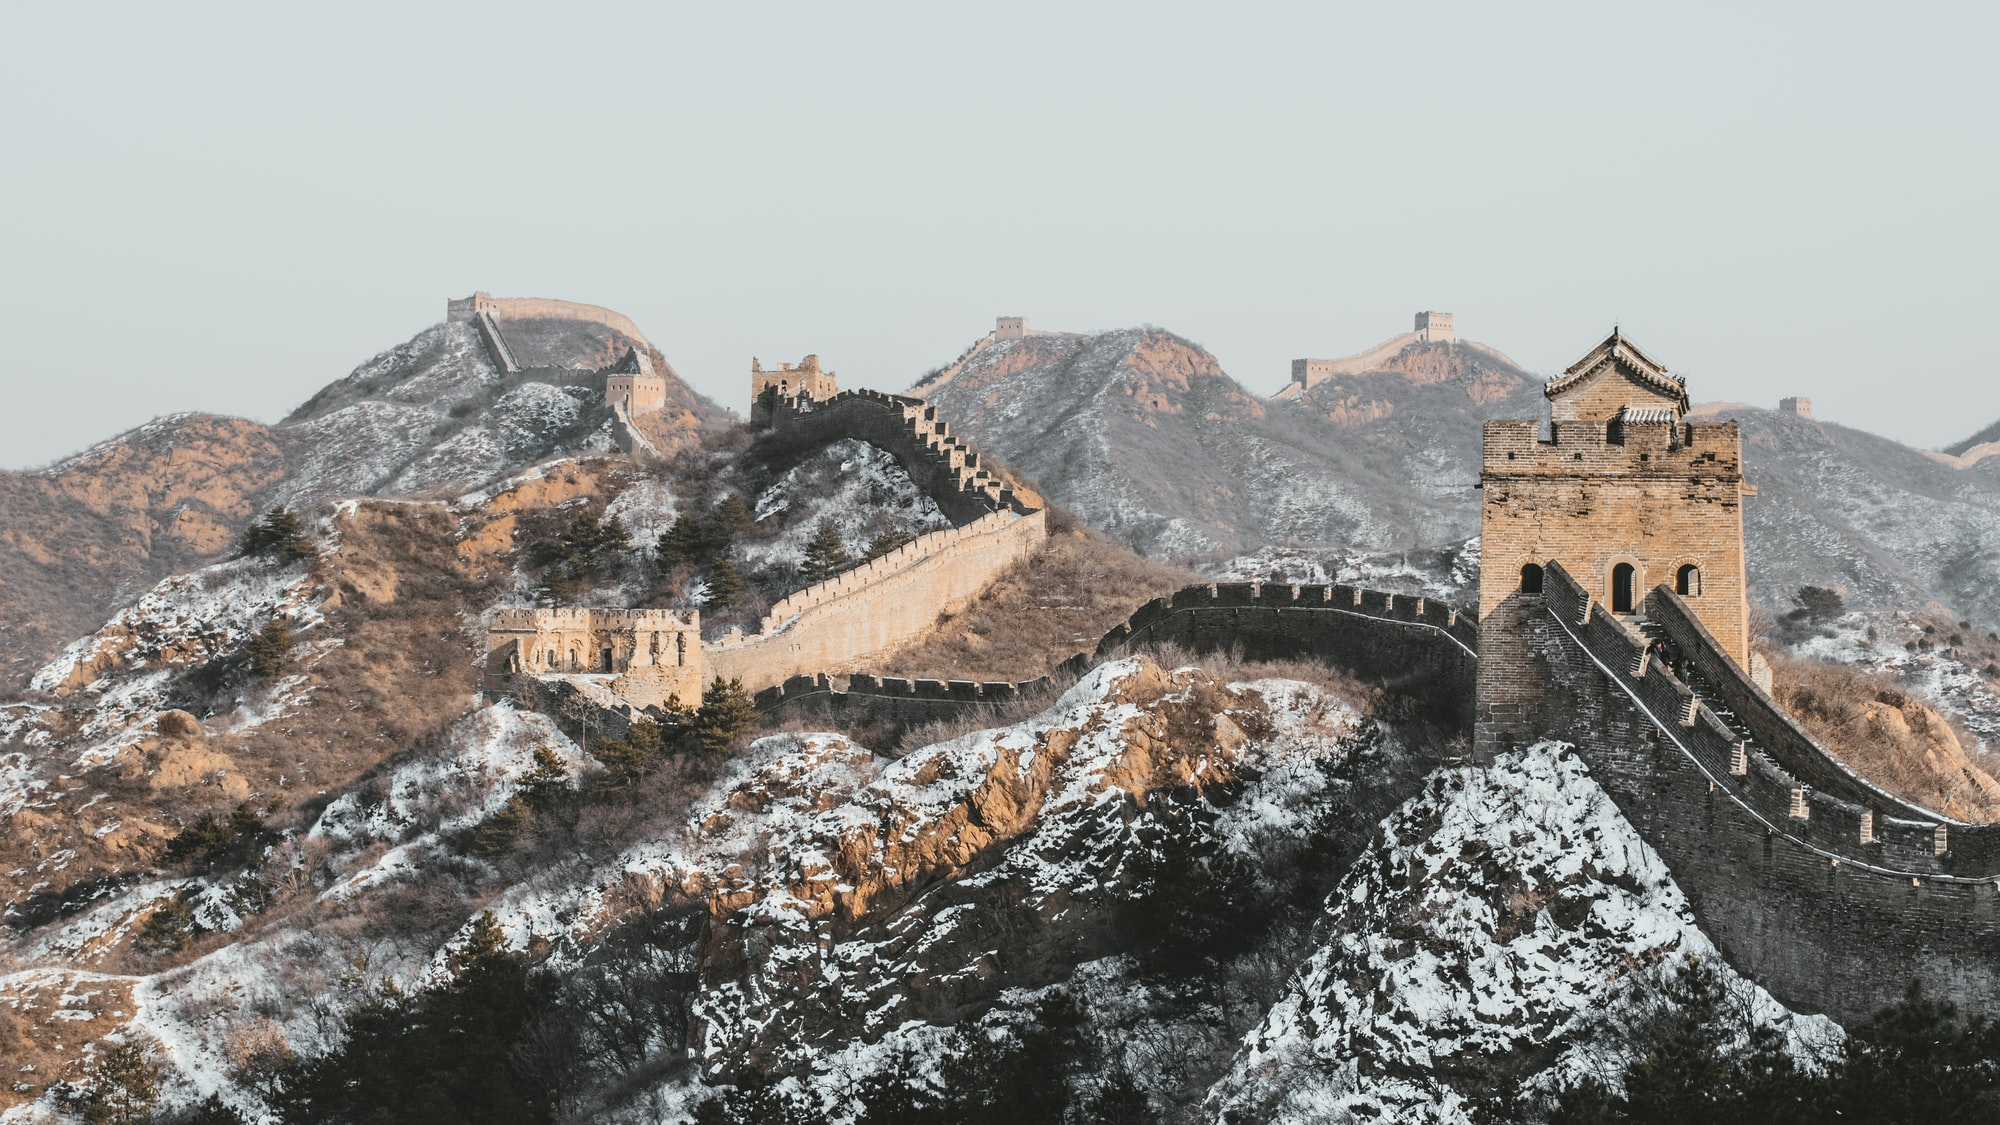 De Grote Cryptomuur in China